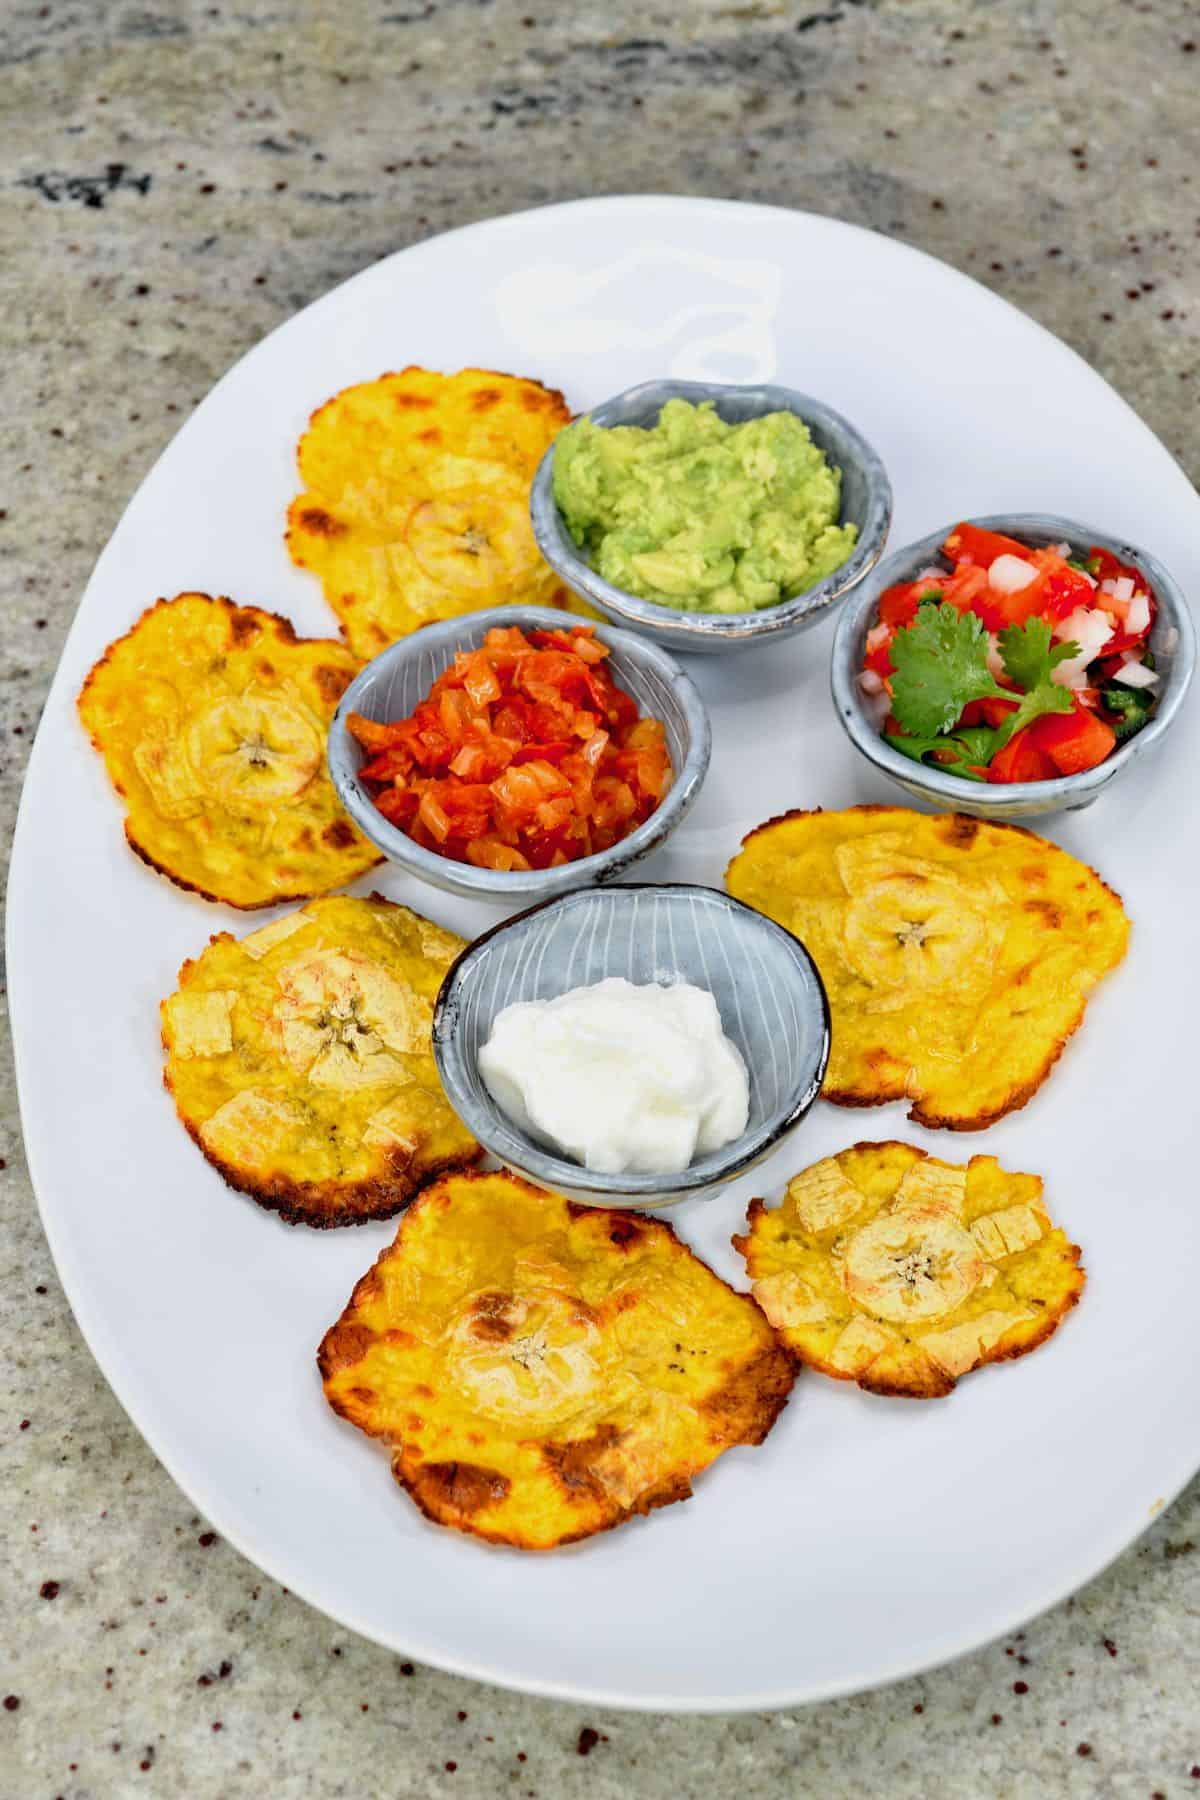 Plantain chips on a plate with salsas